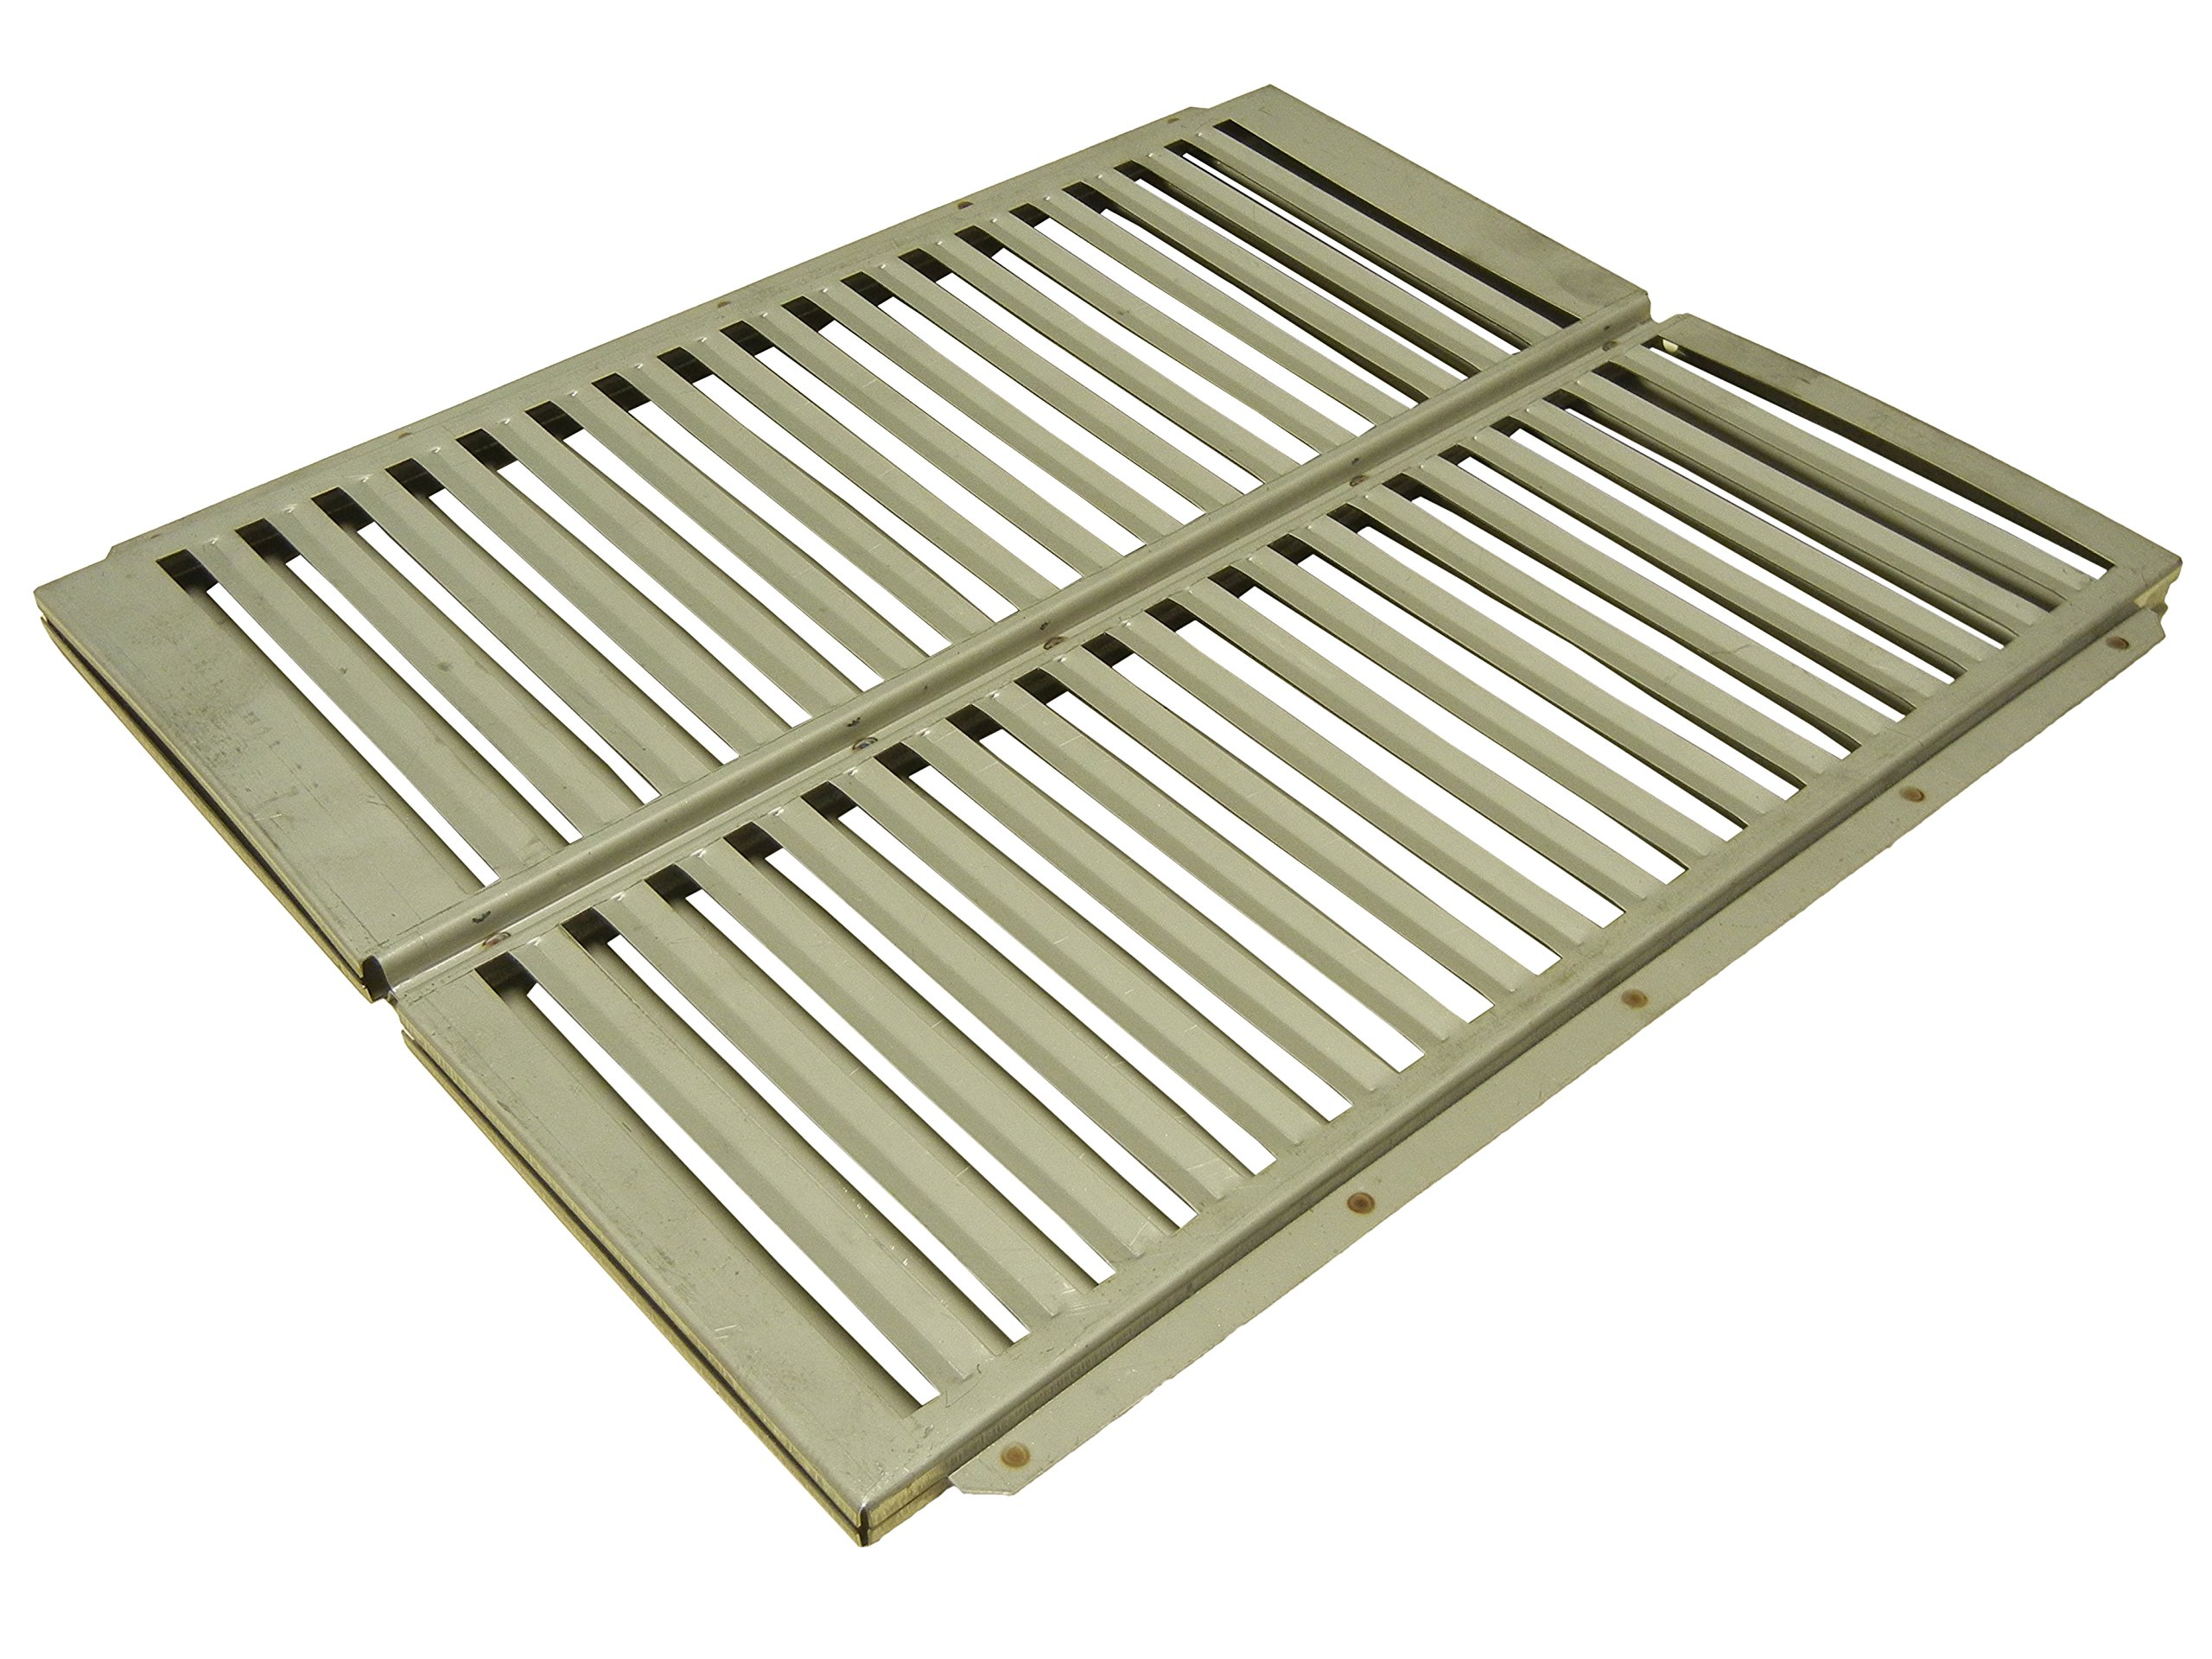 Stainless Steel Heat Plate for Ducane Grills